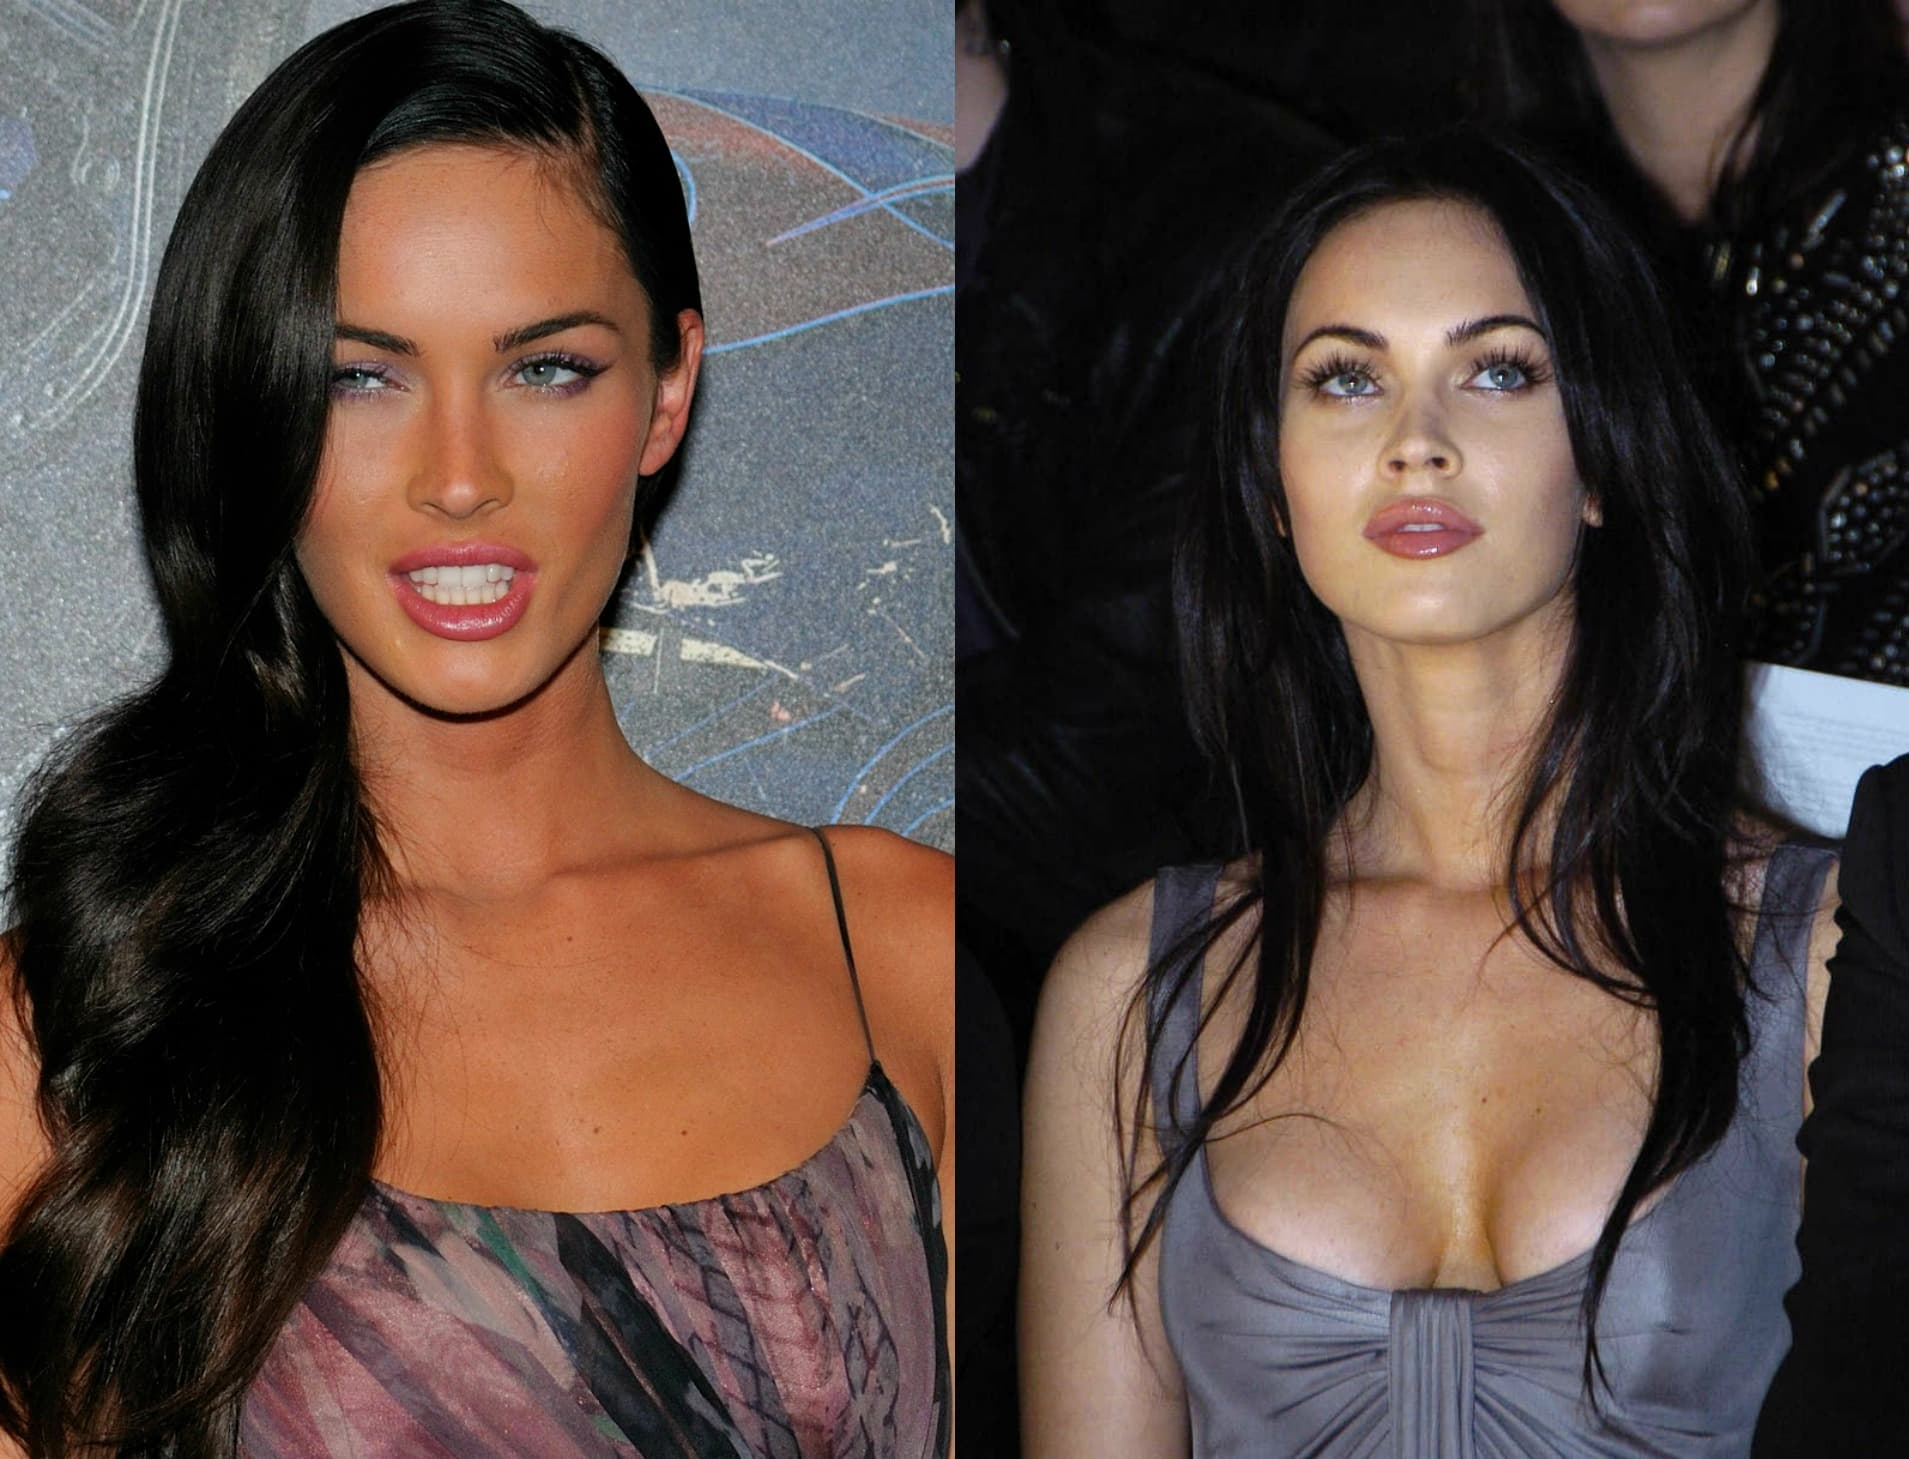 Megan For Before And After Plastic Surgery photo - 1